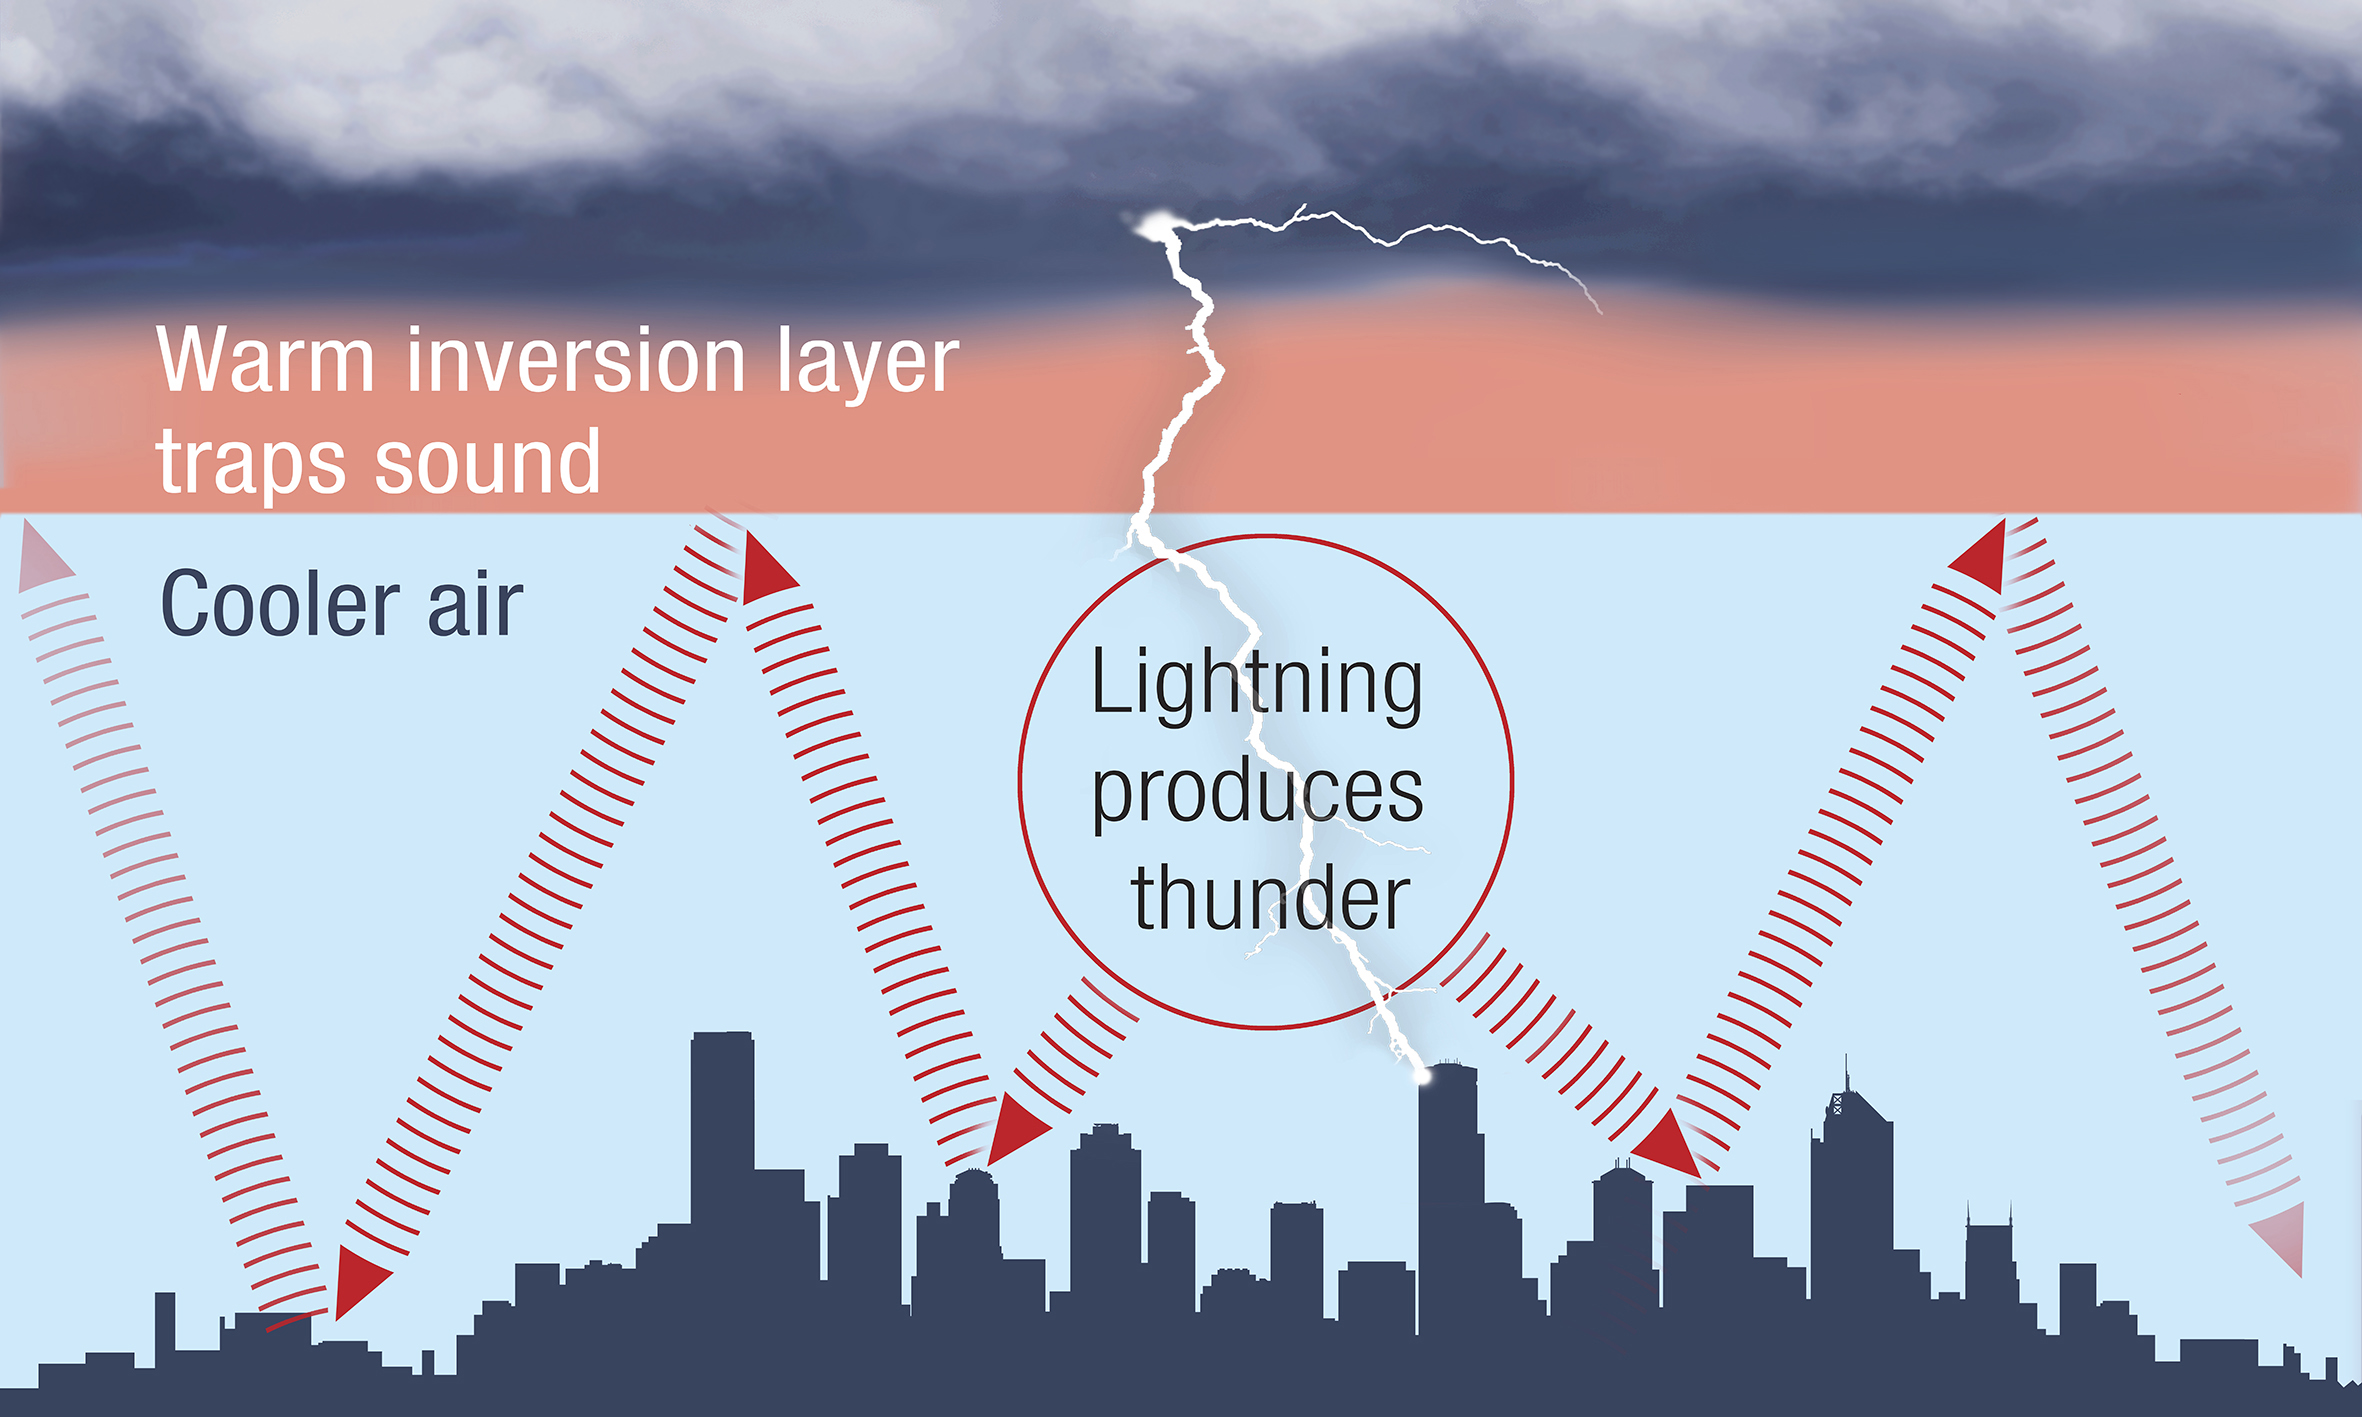 Diagram showing sound trapped under a layer of warmer air, keeping it closer to the surface.